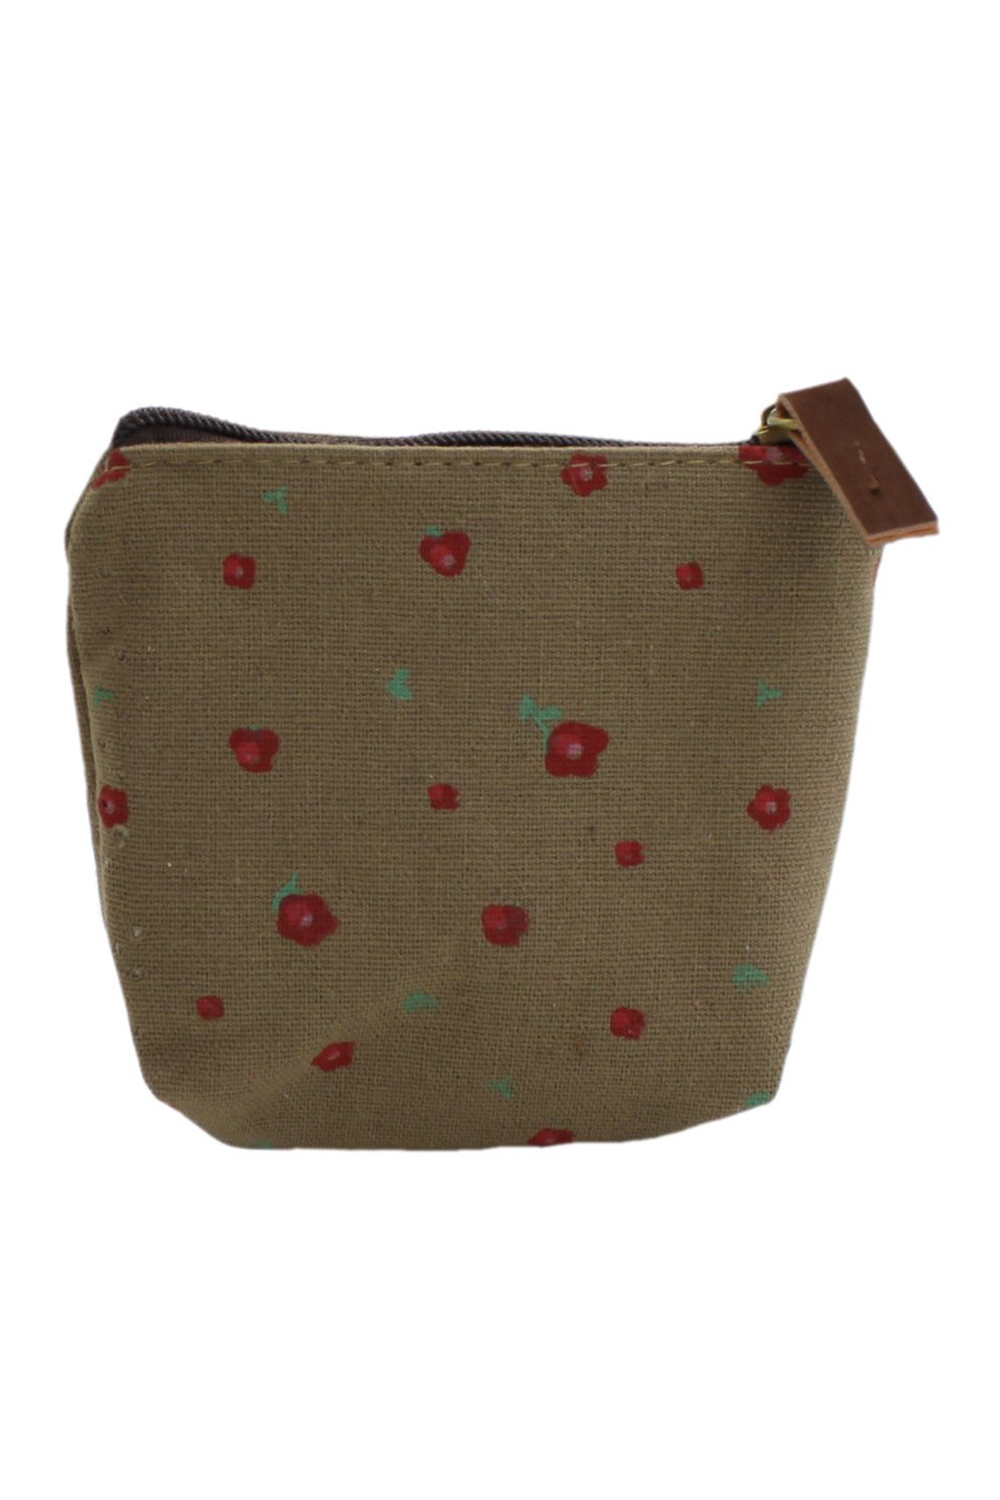 Lady Small Canvas Purse Wallet Coin(brown)